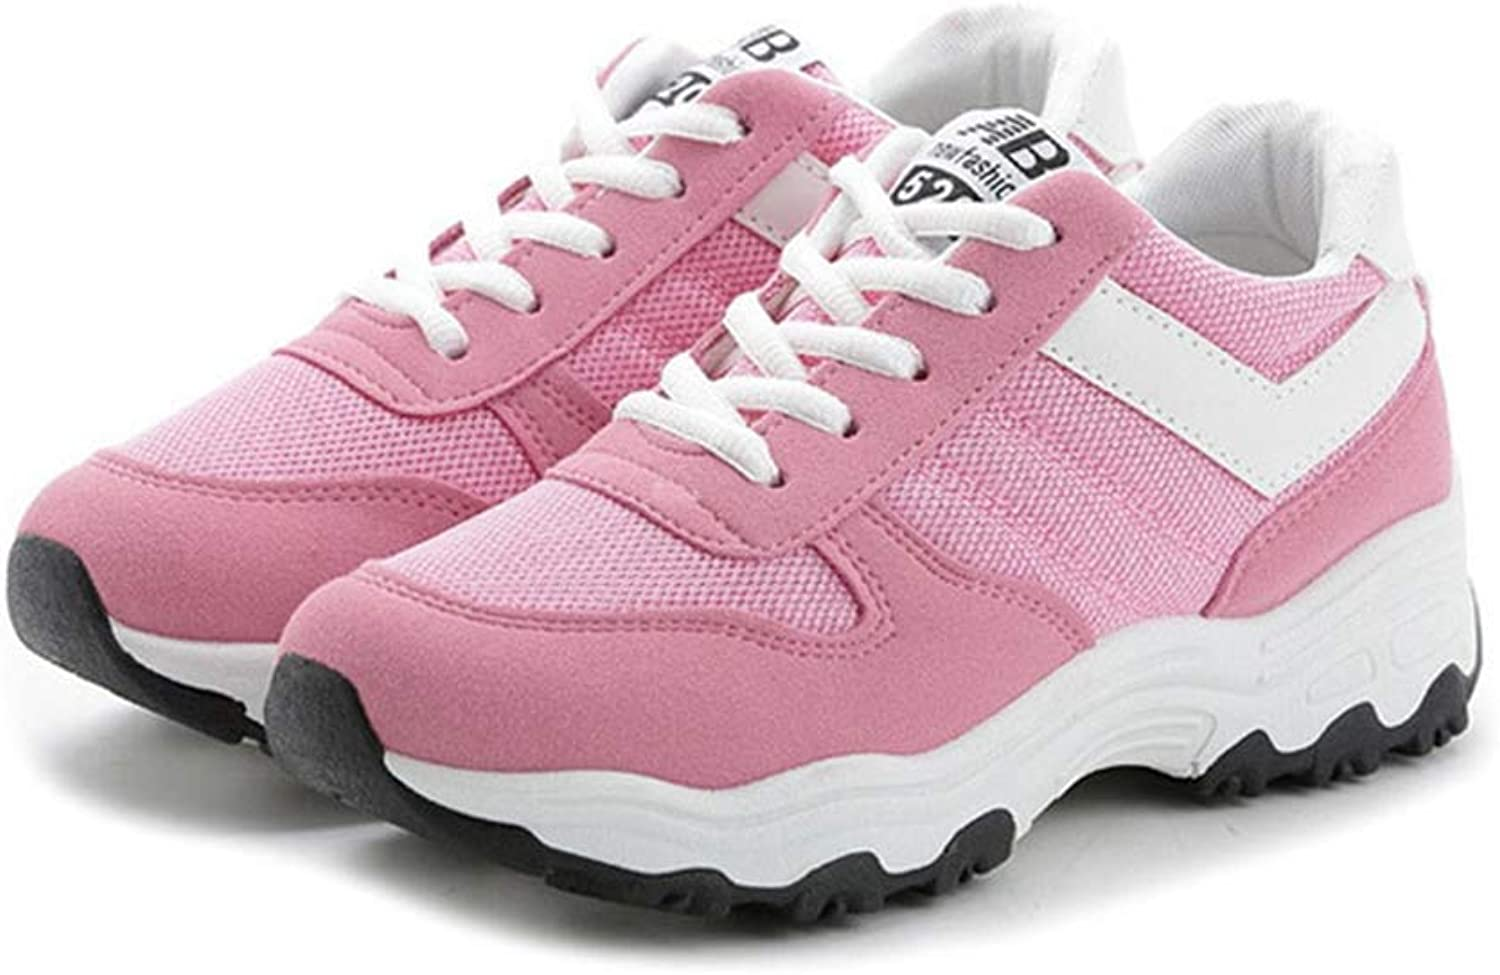 Womens Wedge Sneakers Casual Soft Sole Cotton Fabric Lace Up Low Top Athletic Running Walking shoes